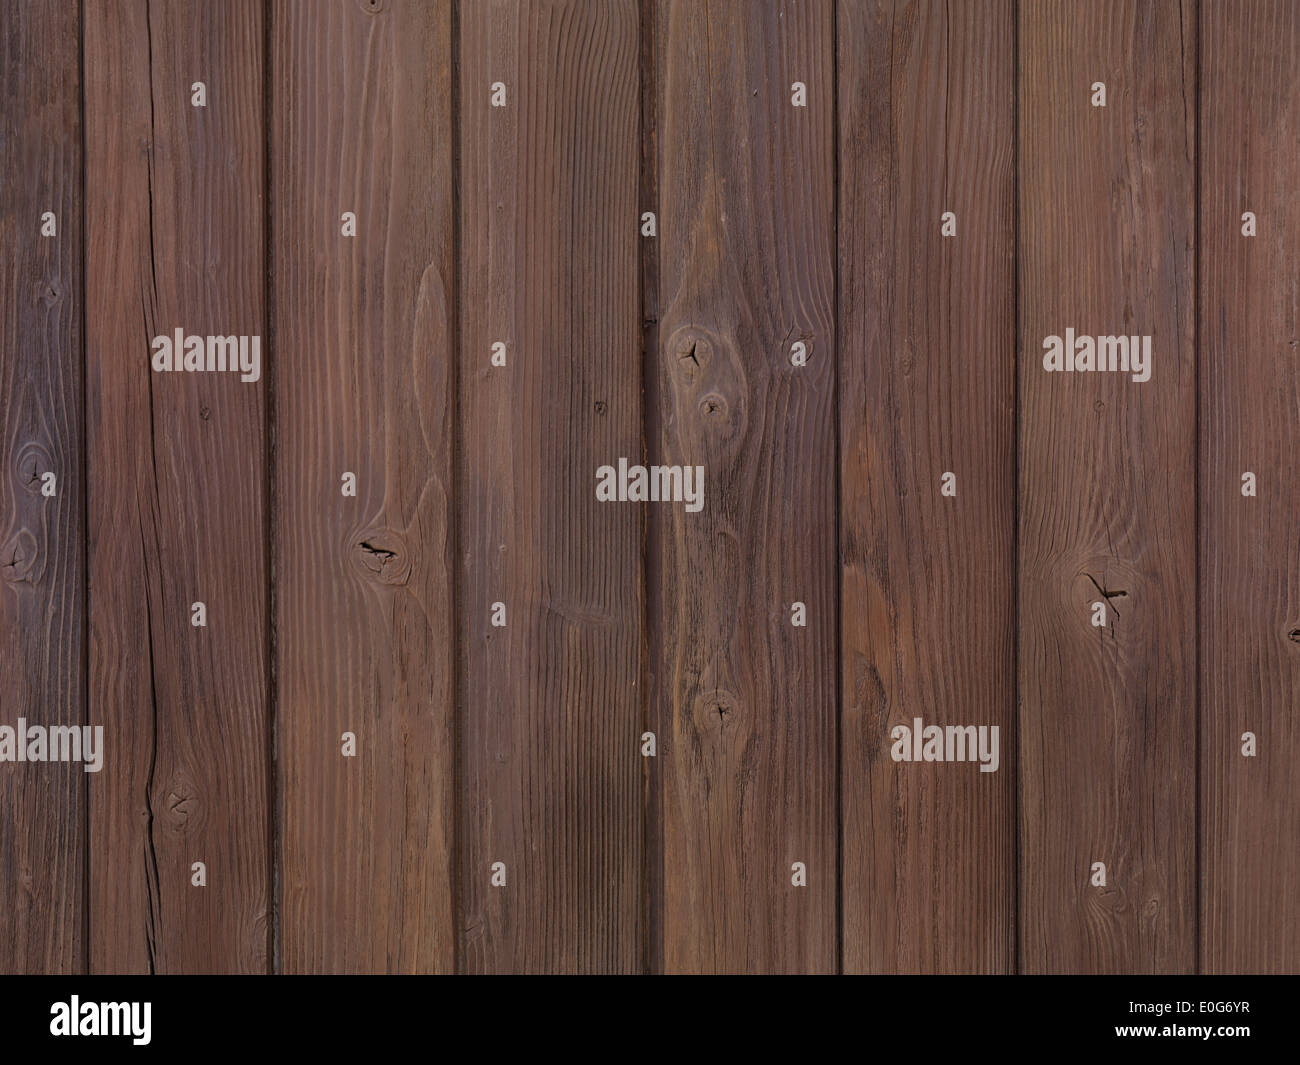 Old wooden planks texture - Stock Image